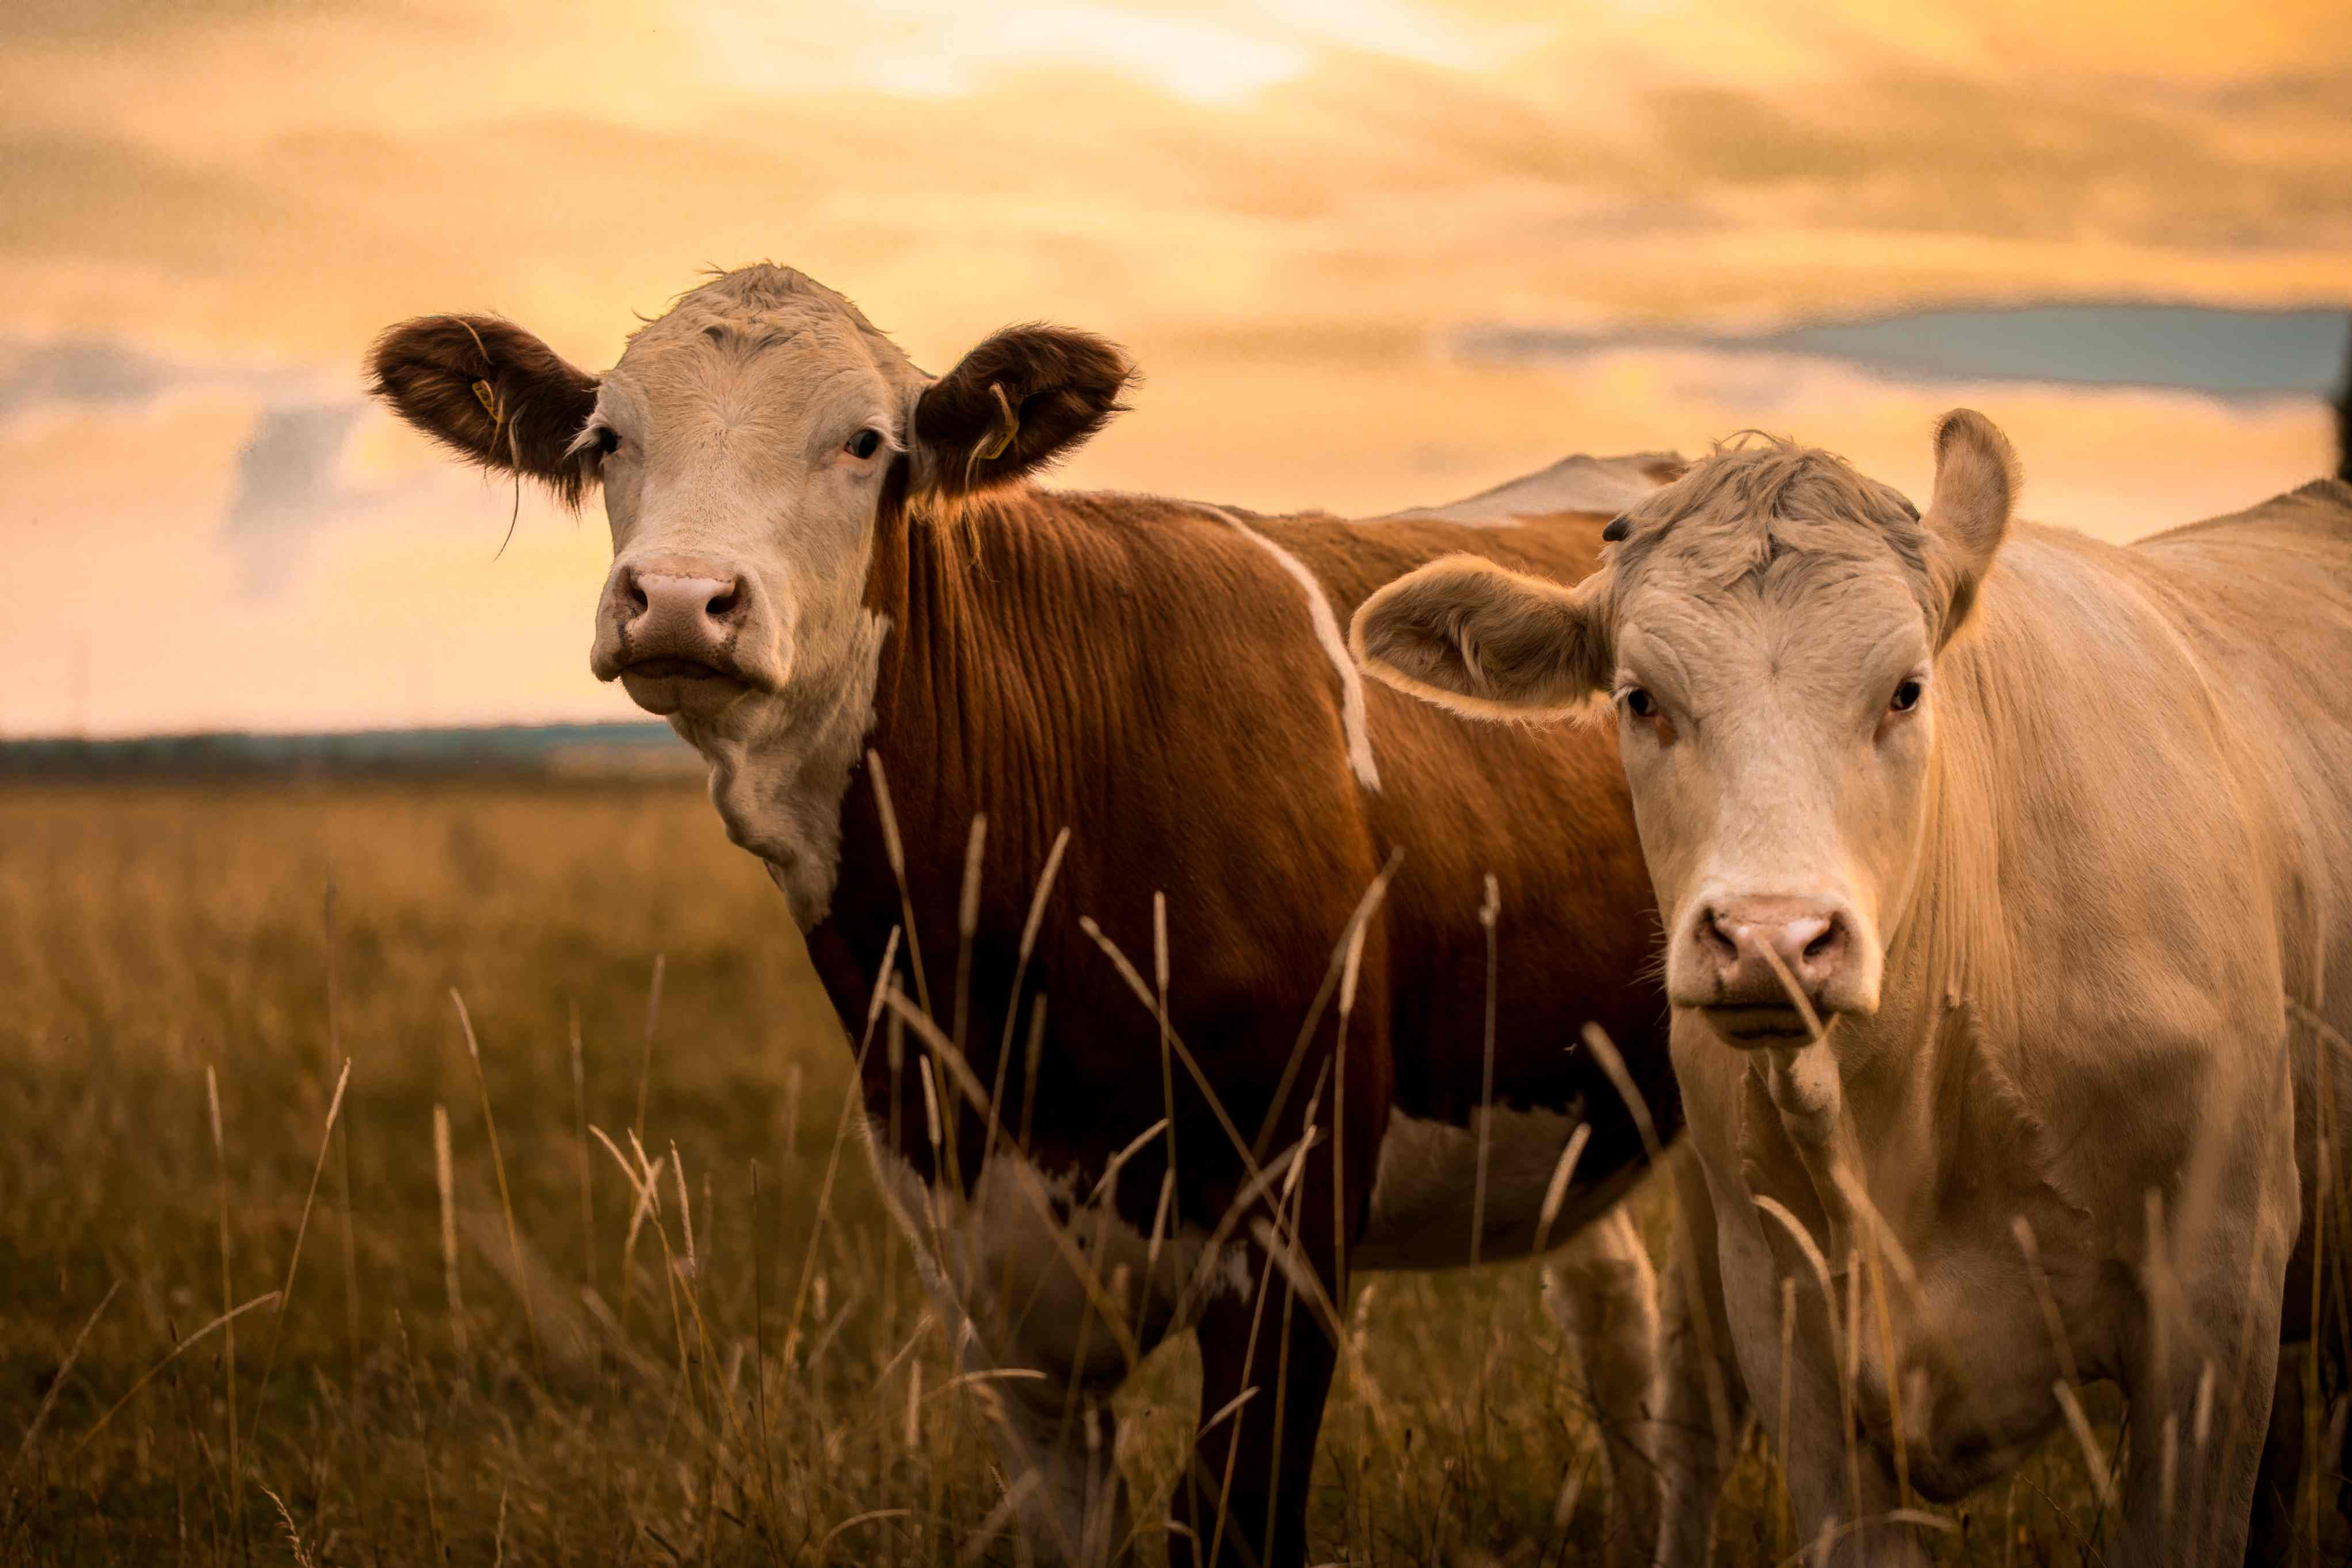 Cows on a farm at sunset